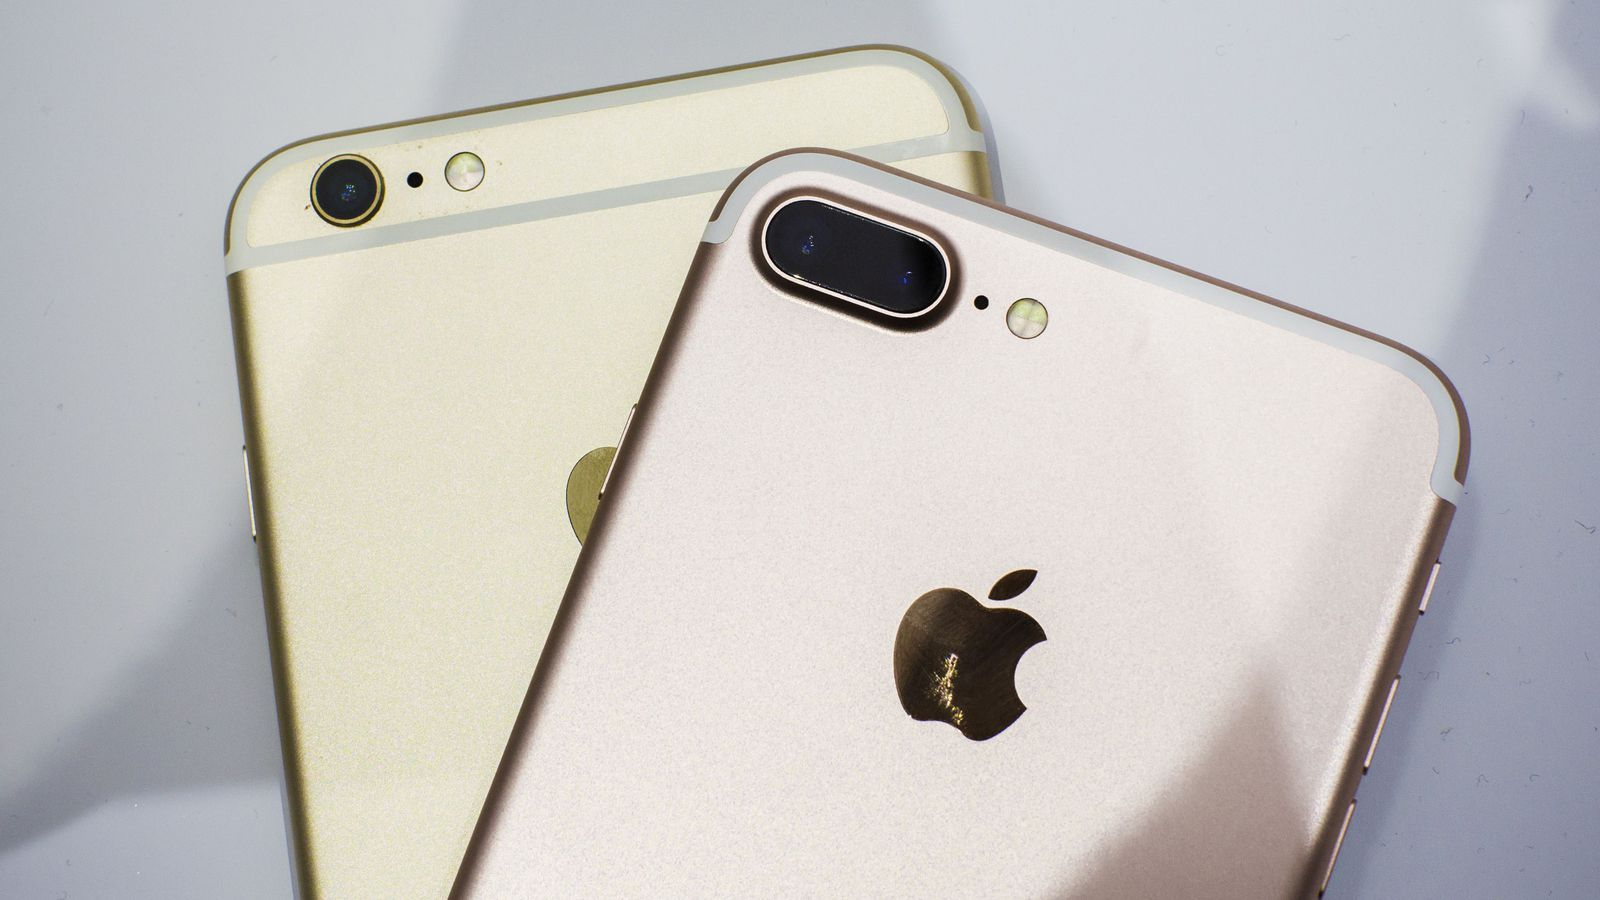 Apple démarrerait la production de l'iPhone 8 plus tôt que d'habitude